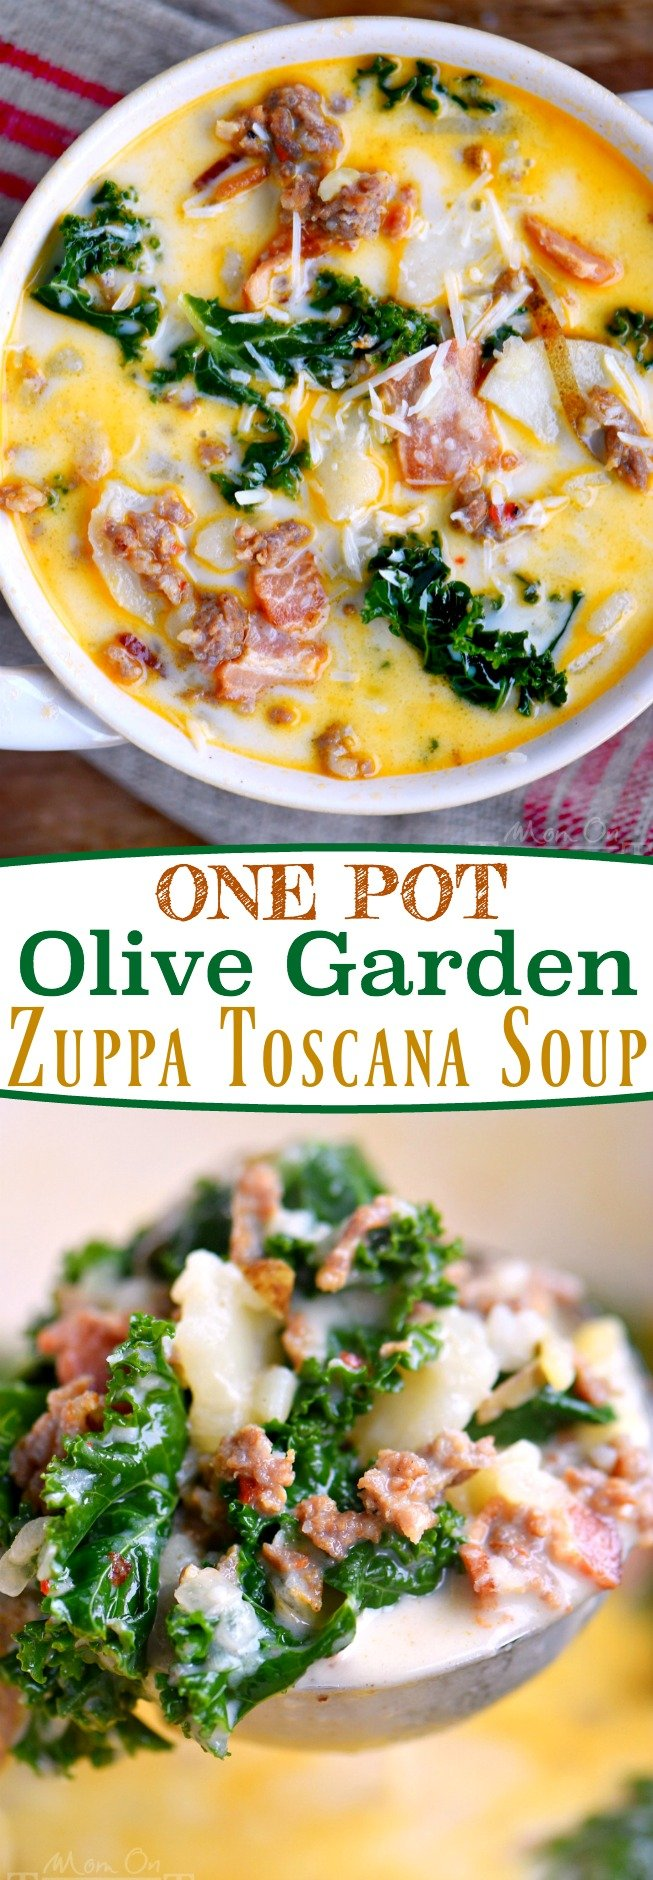 one-pot-zuppa-toscana-soup-collage